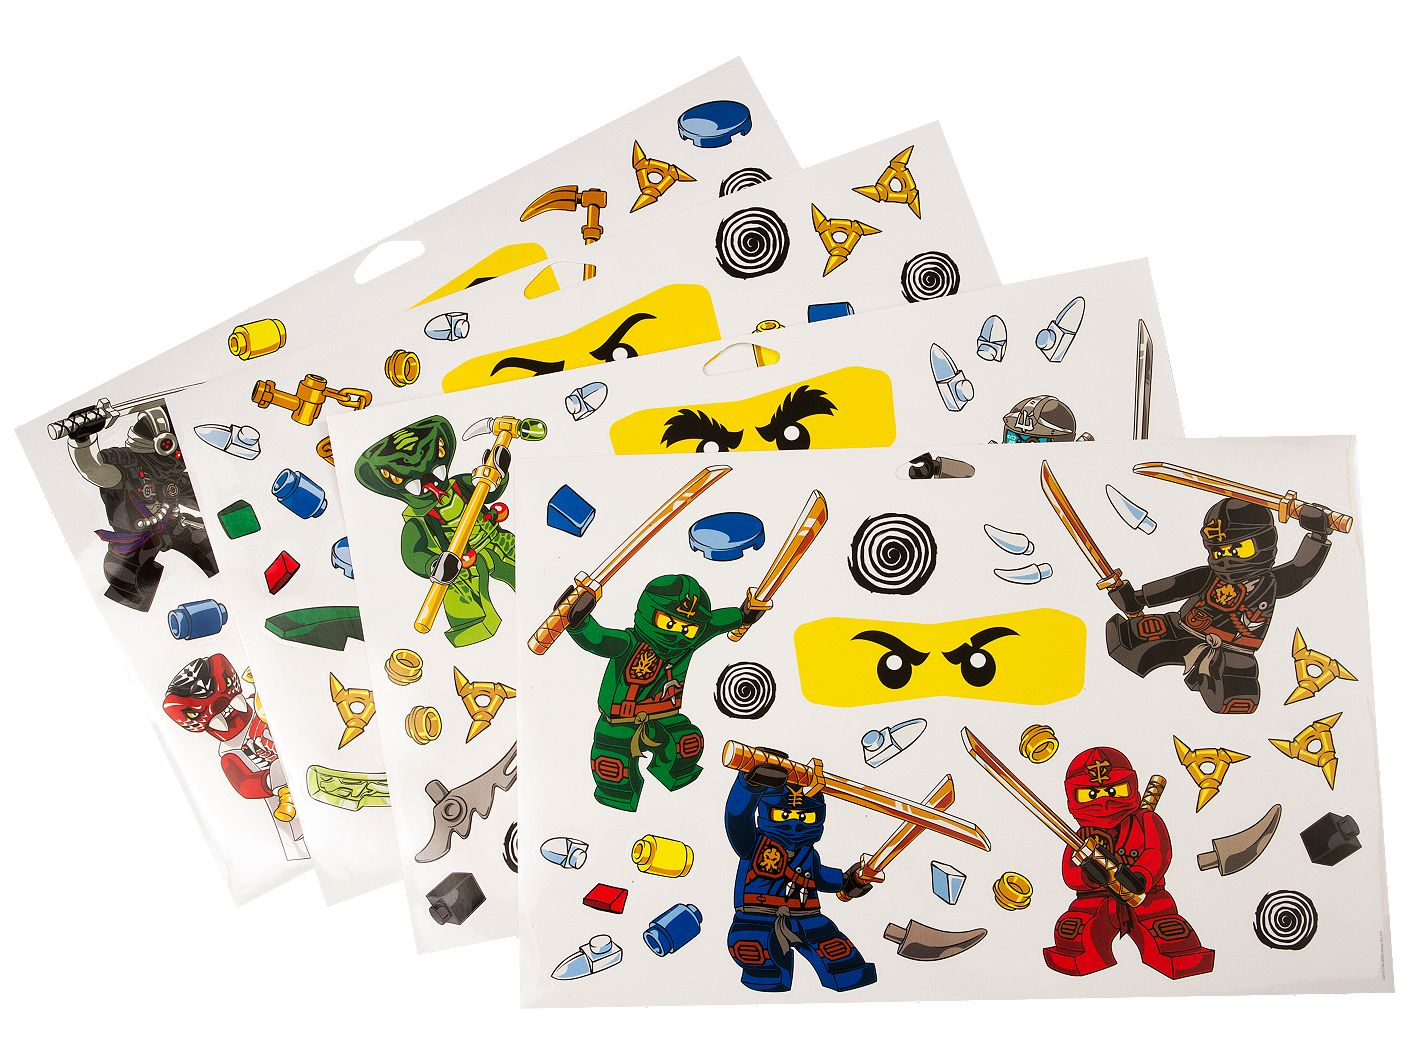 Outstanding Lego Ninjago Wall Stickers 851348 Ninjago Buy Online At The Official Lego Shop Us Download Free Architecture Designs Scobabritishbridgeorg